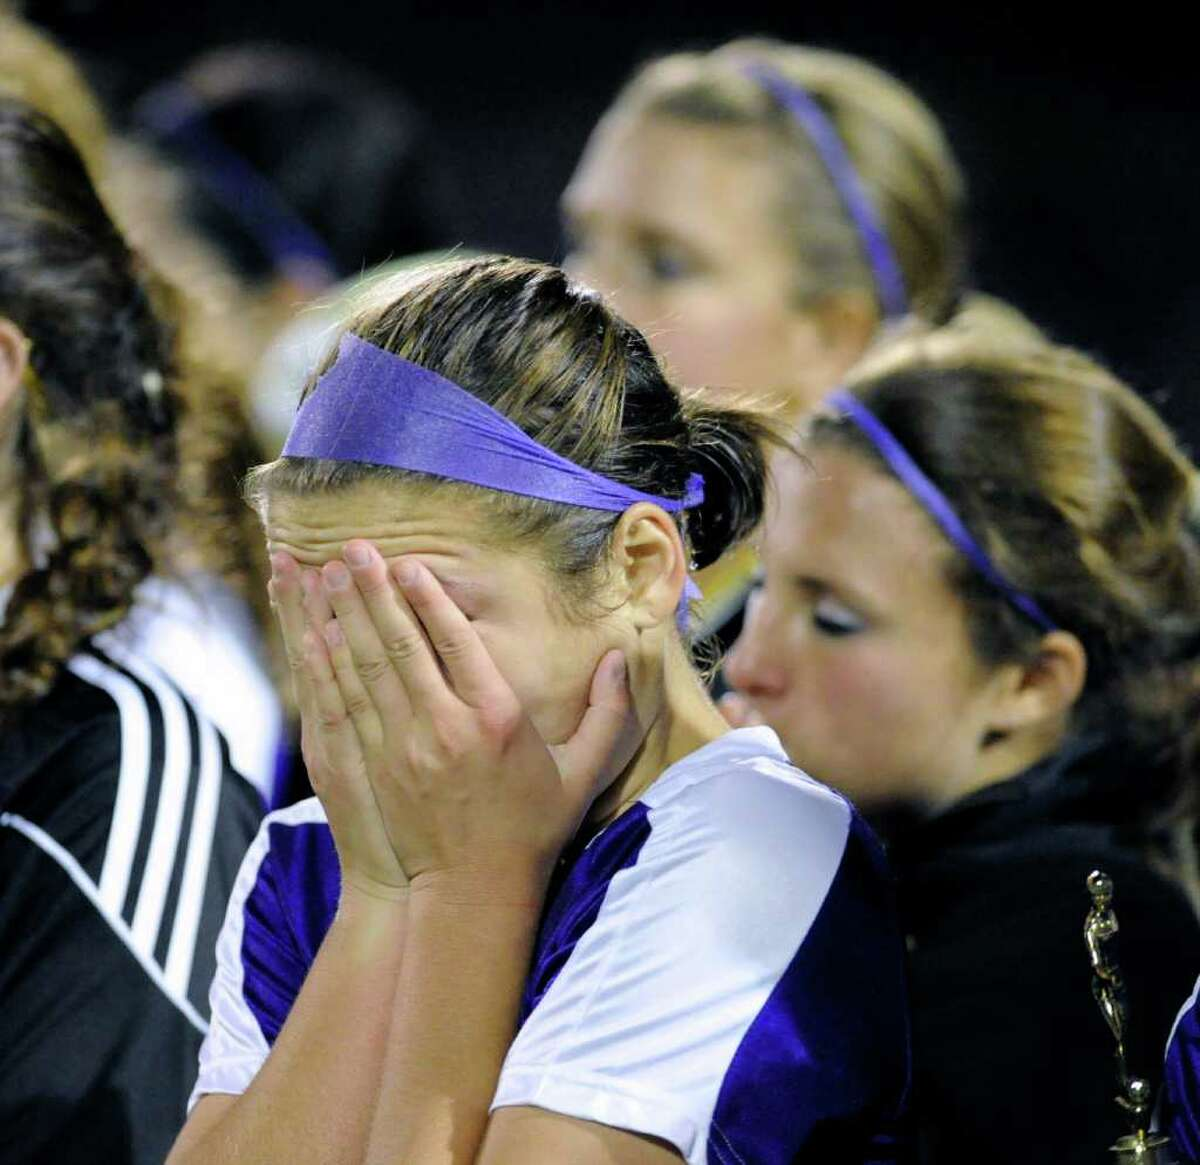 A Westhill player buries her head in her hands during the 2010 Girls FCIAC Soccer Championship between Greenwich High School vs. Westhill High School at Norwalk High School, Wednesday night, Nov. 3, 2010. Greenwich defeated Westhill, 1-0.